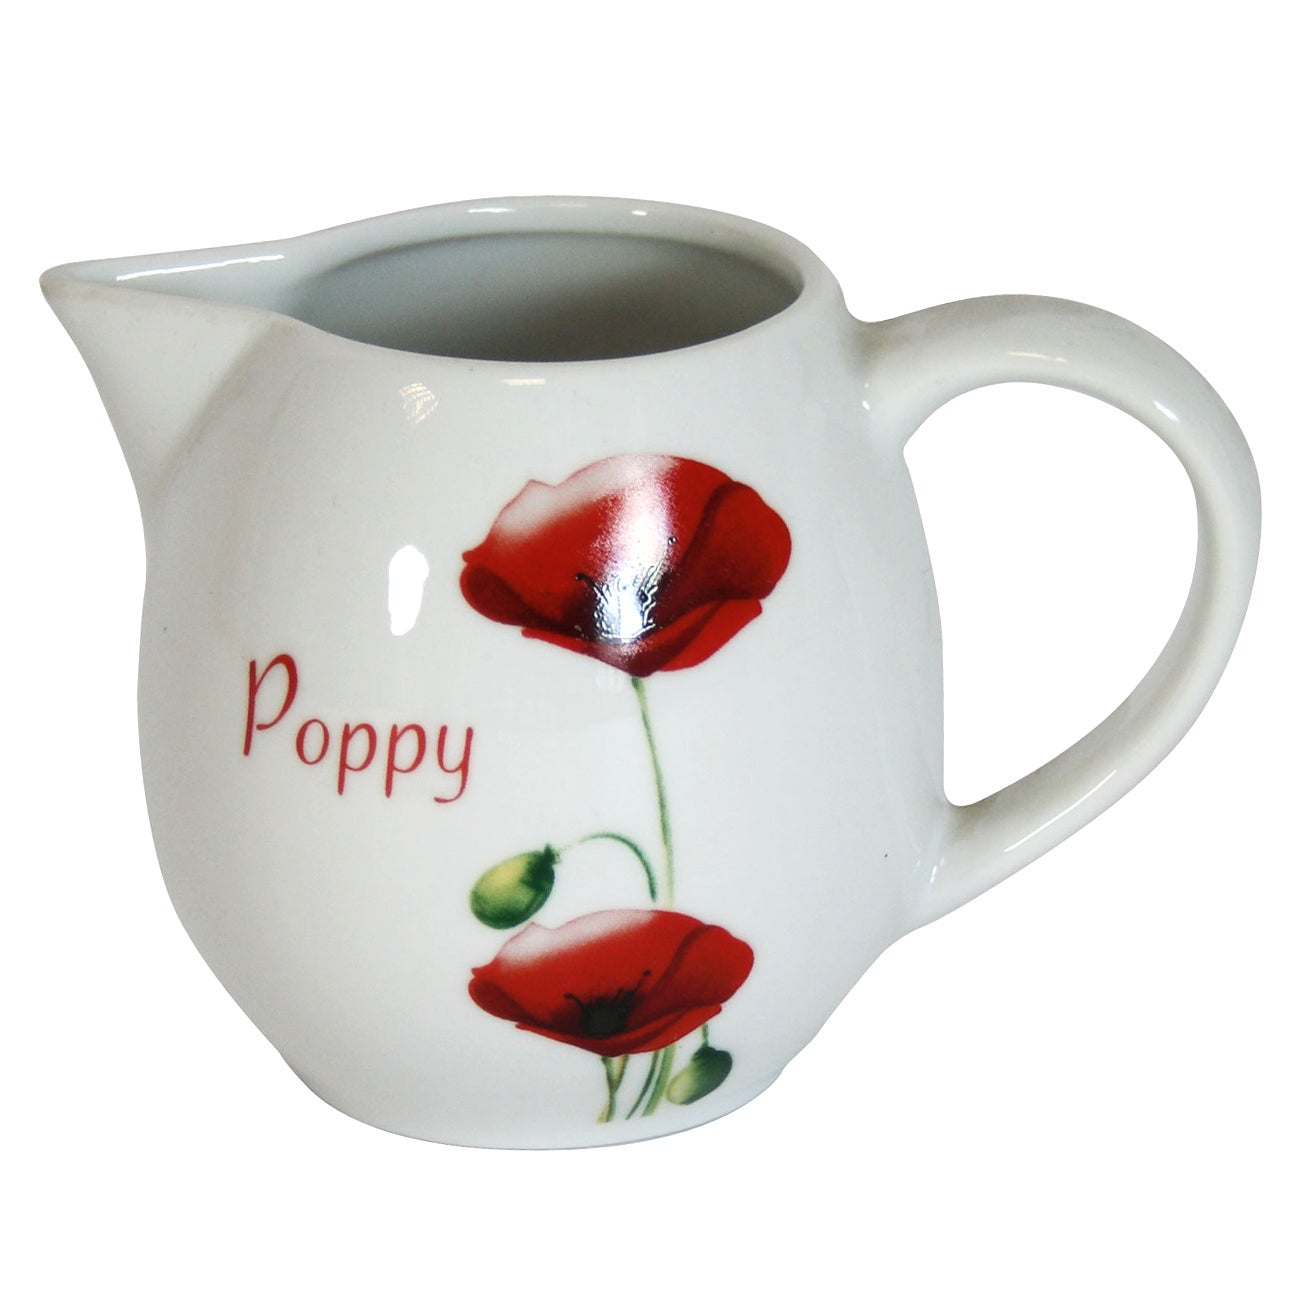 Poppy Collection Creamer Jug